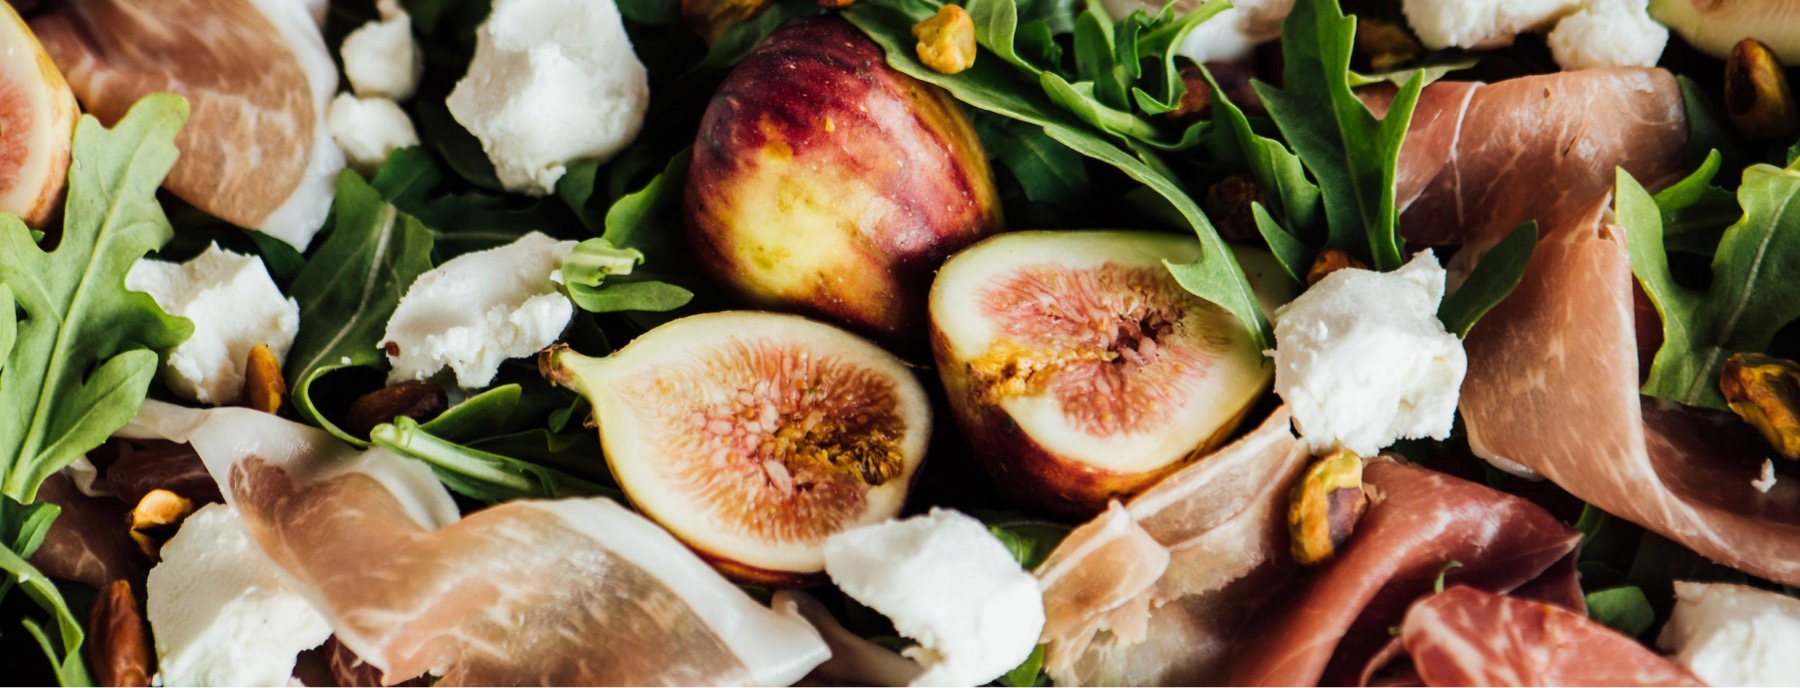 Fig-Prosciutto-Salad-catering-new-orleans